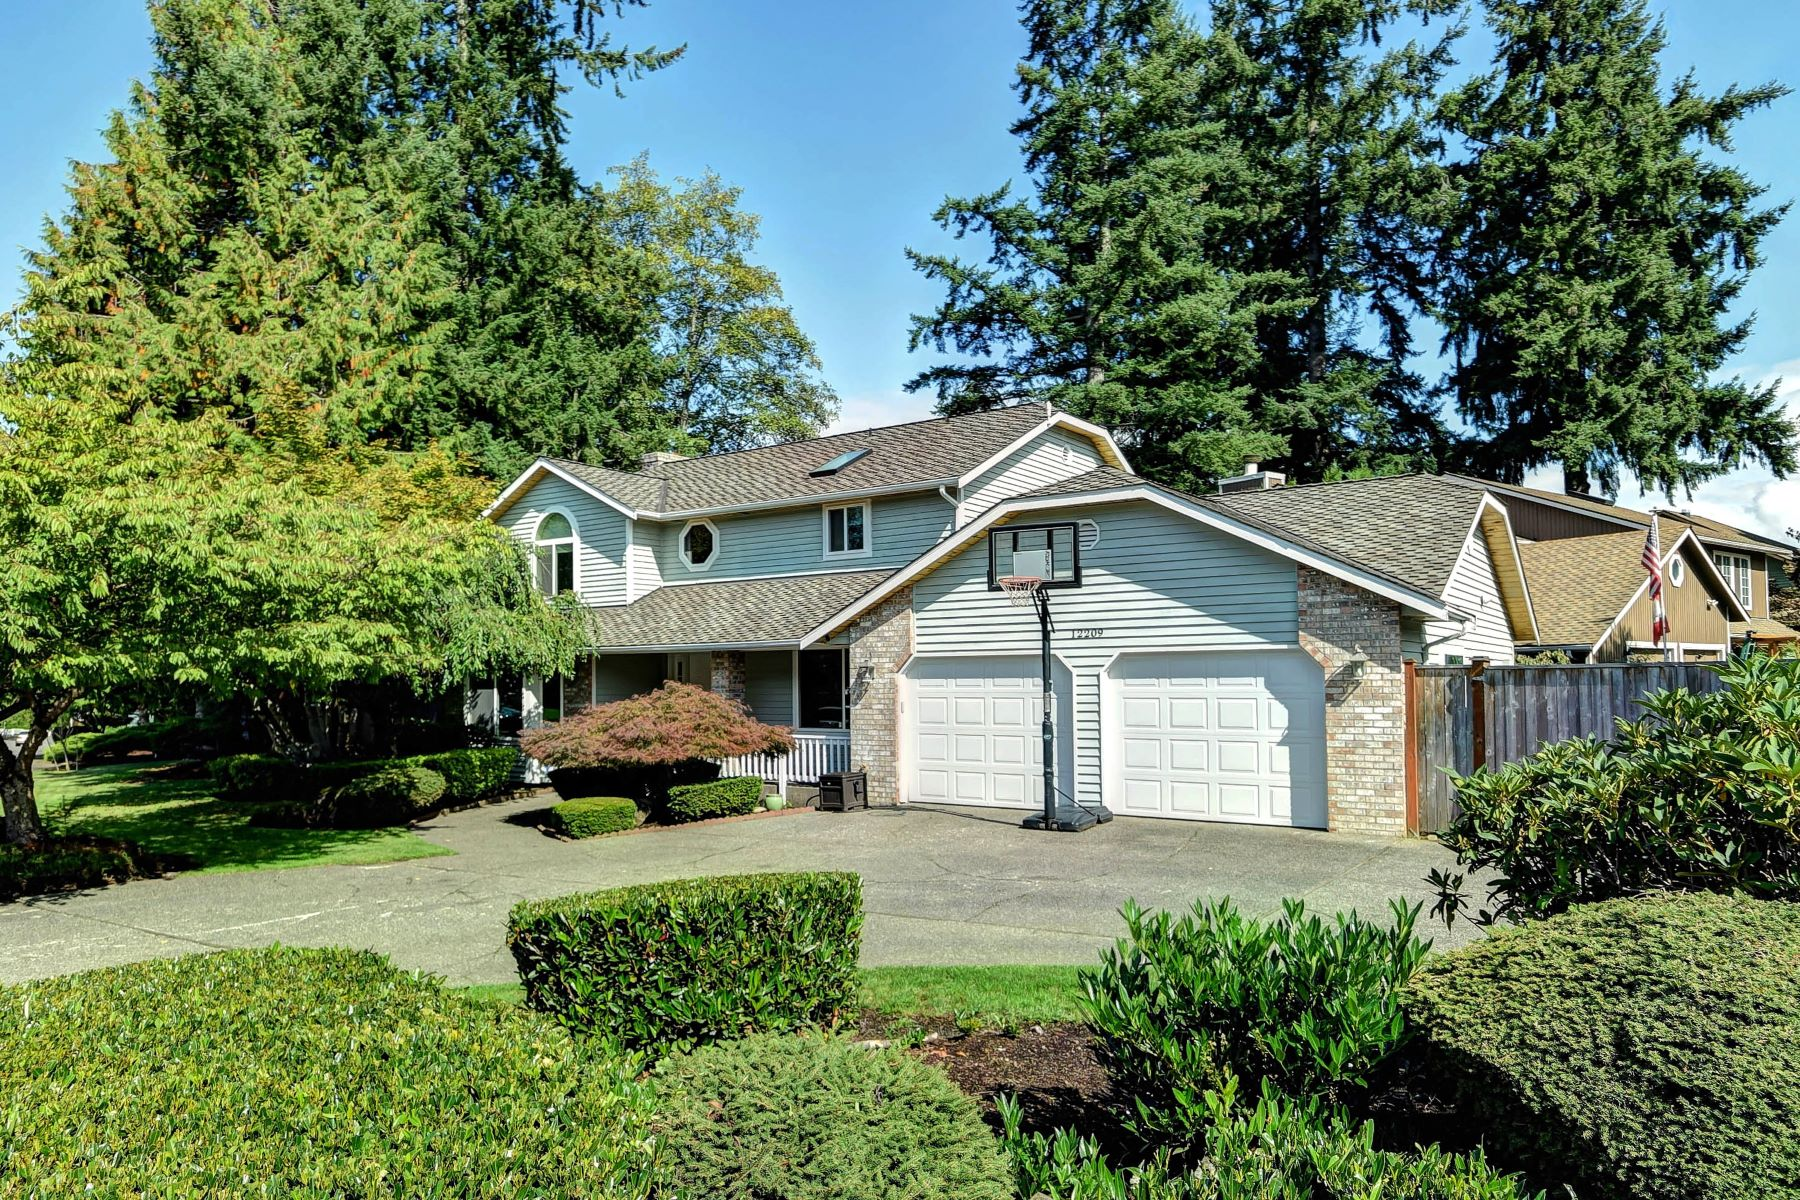 Single Family Homes for Sale at Autumn Meadows 12209 43rd Dr SE Everett, Washington 98208 United States